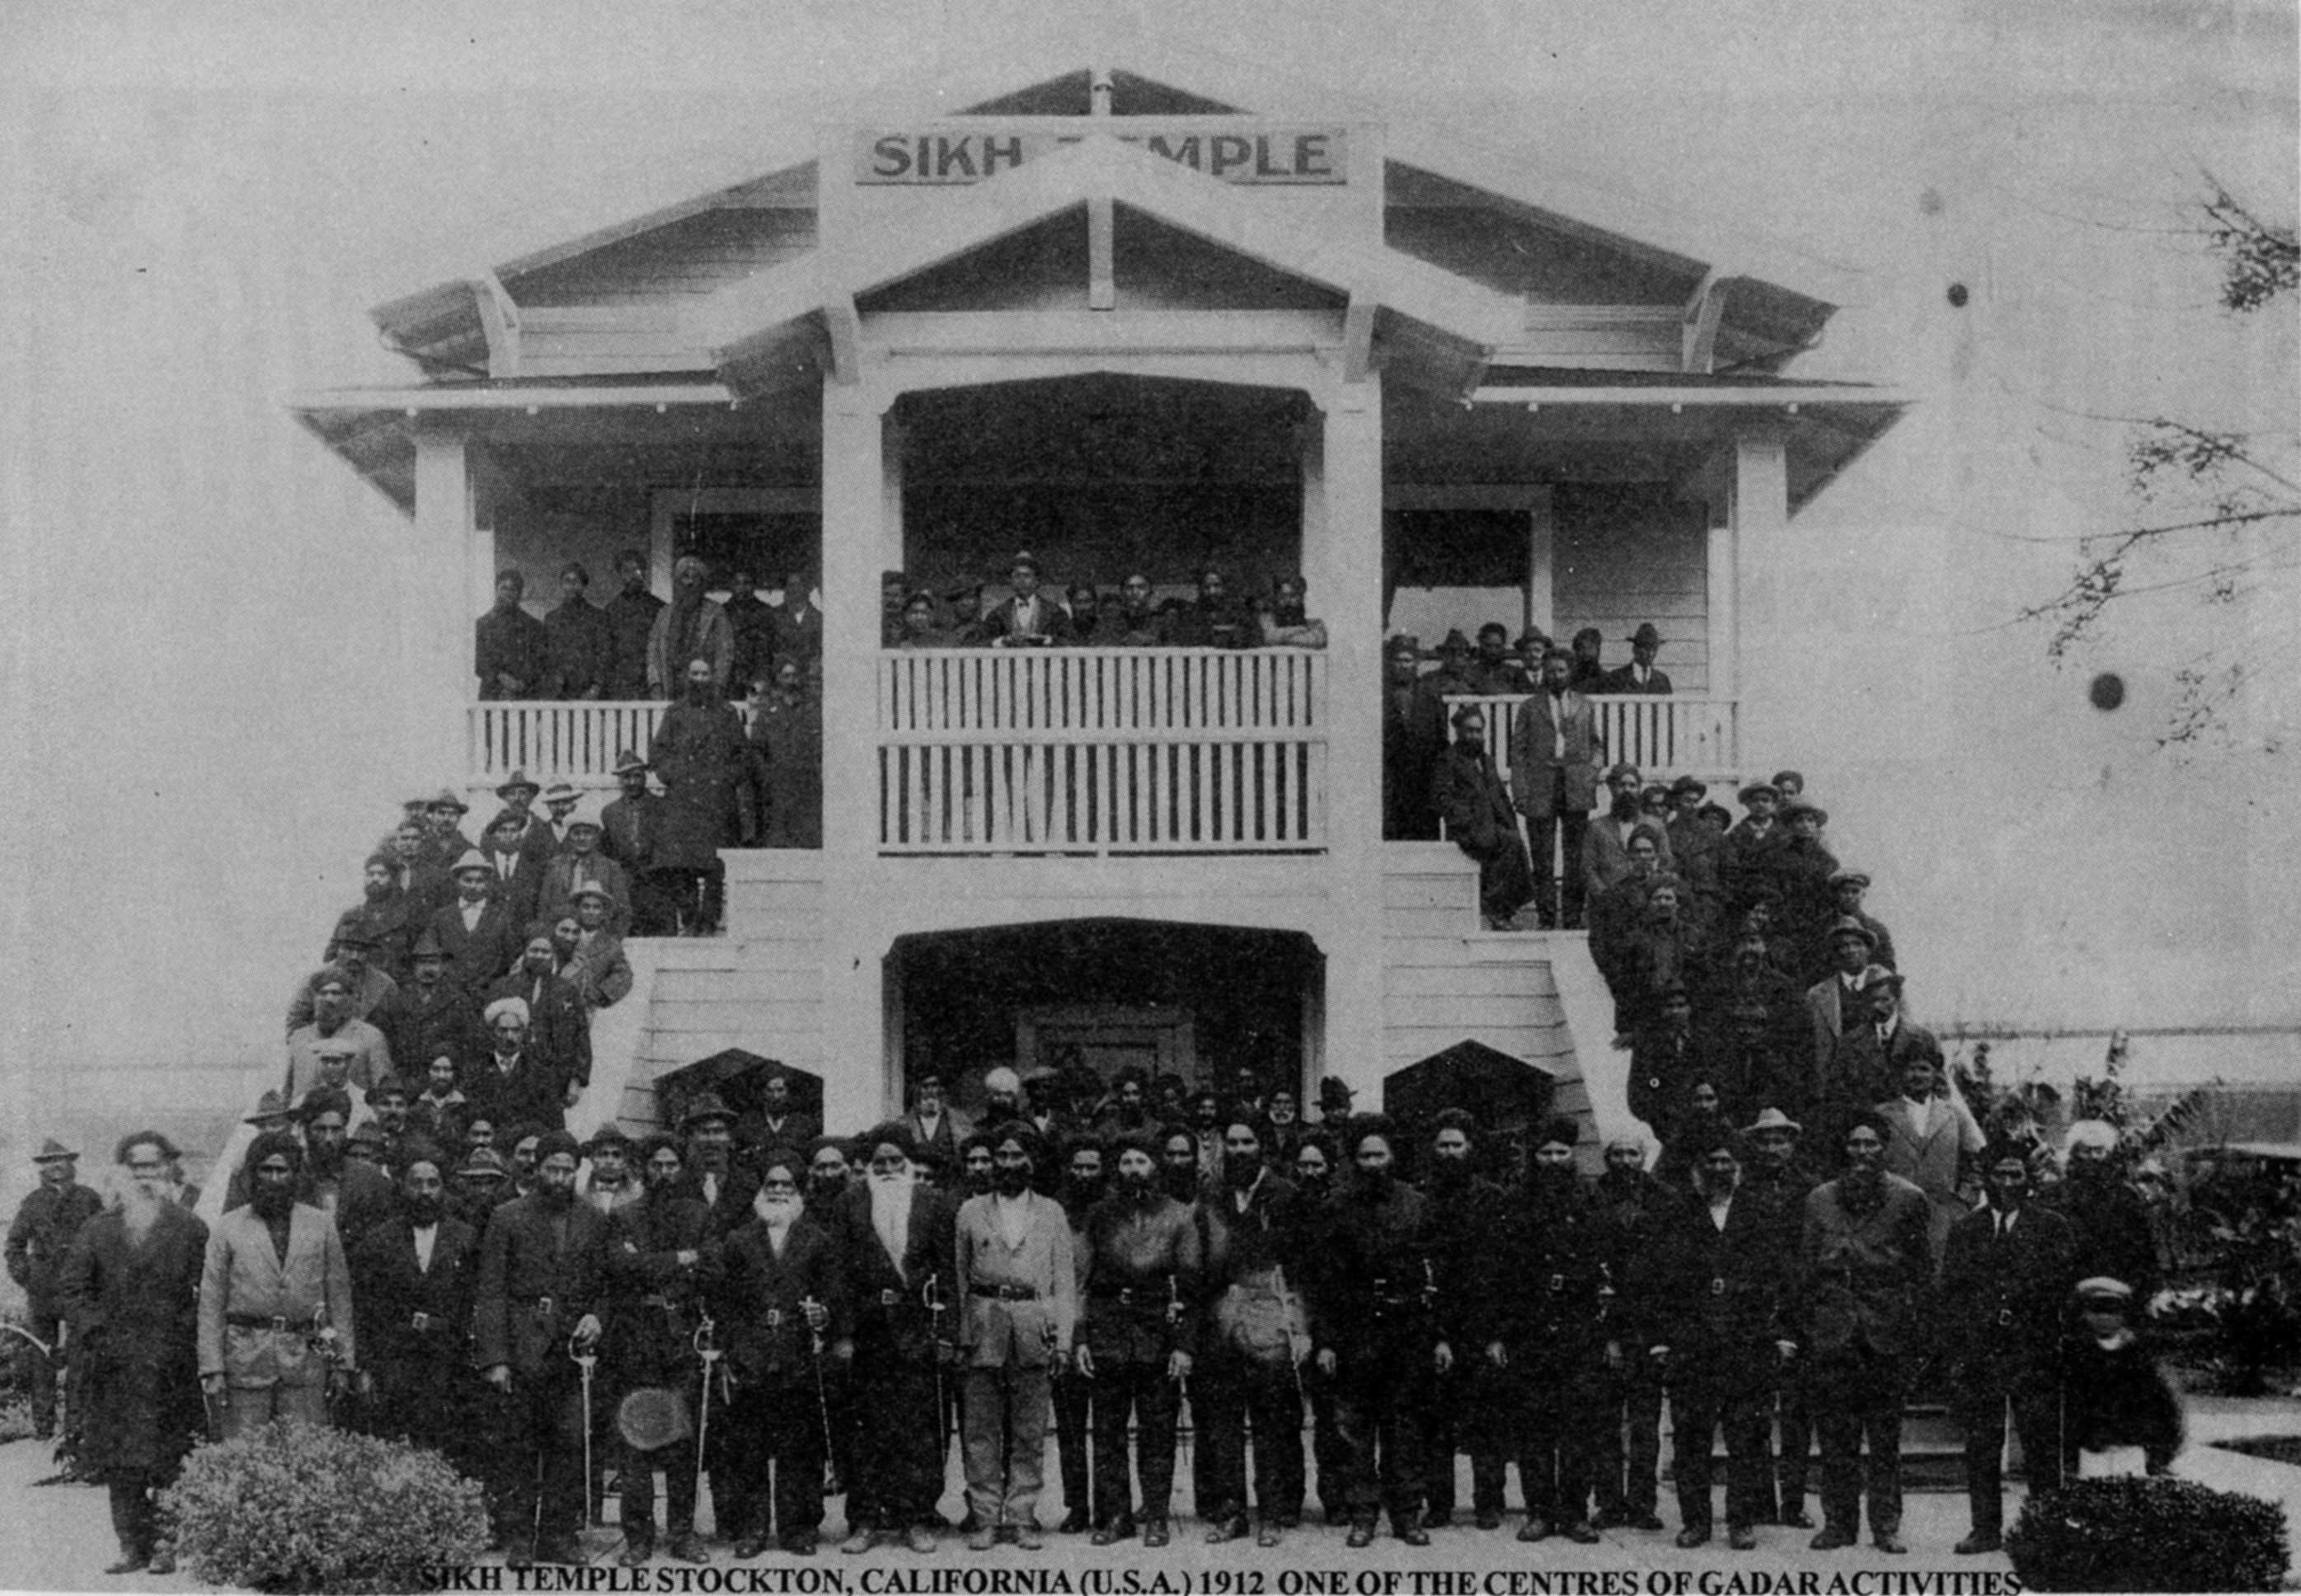 history and experience of the sikh Sikh immigration history in california is profoundly dichotomous and can be divided into two general, extremely contrasting periods the first extended from the turn-of-the-century until 1965, characterized by an initial decade of open immigration (1900-1910) shaped by four interrelated but fluid forces.